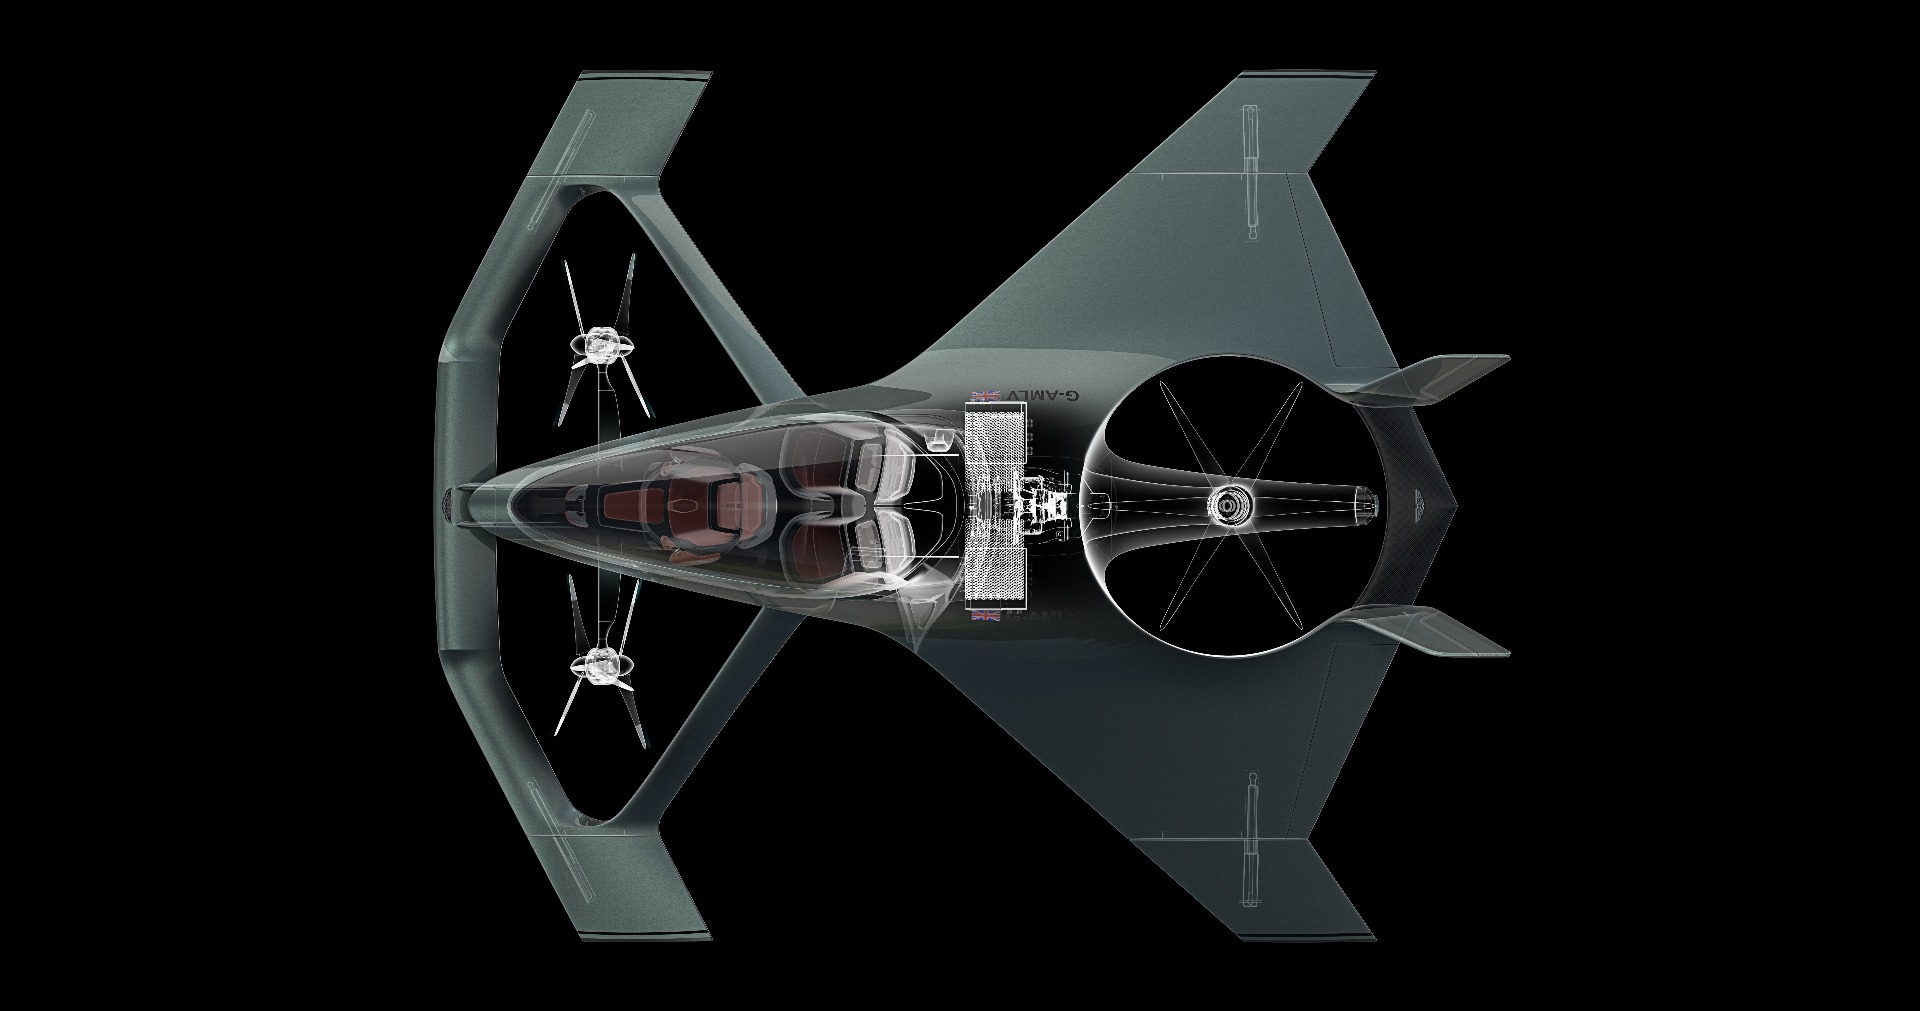 Even Aston Martin is keen to get in on the eVTOL air taxi game. The company has designed this Volante Vision concept, but we doubt it'll make production